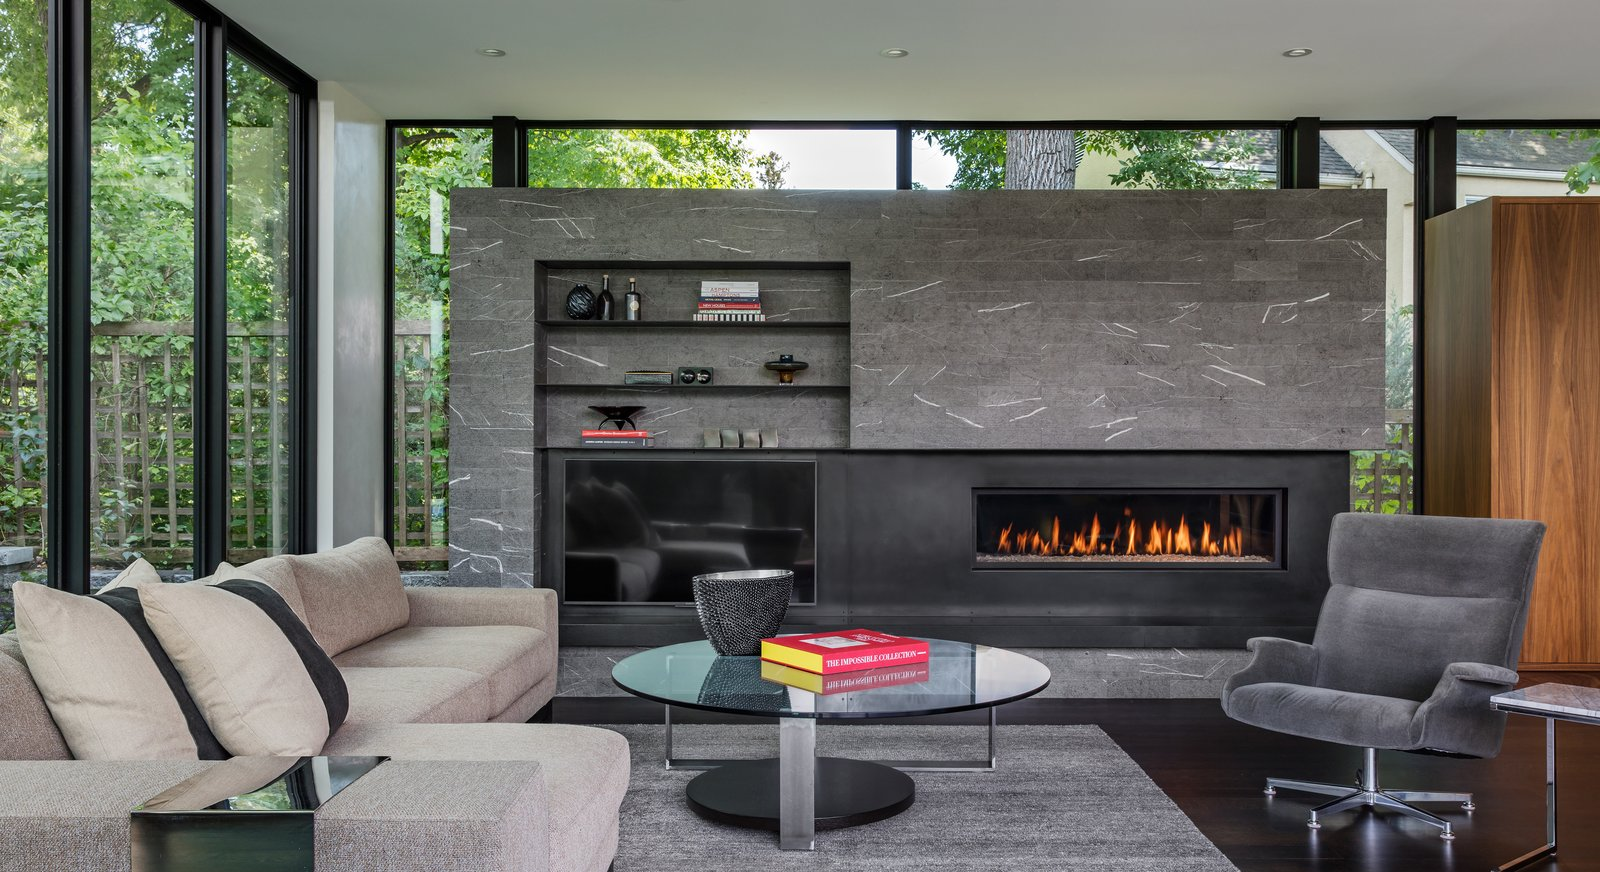 Living Room, Ribbon Fireplace, Corner Fireplace, Coffee Tables, Gas Burning Fireplace, Sectional, Bookcase, Recliner, and Dark Hardwood Floor  Calhoun Pavilions Residence by Peterssen/Keller Architecture